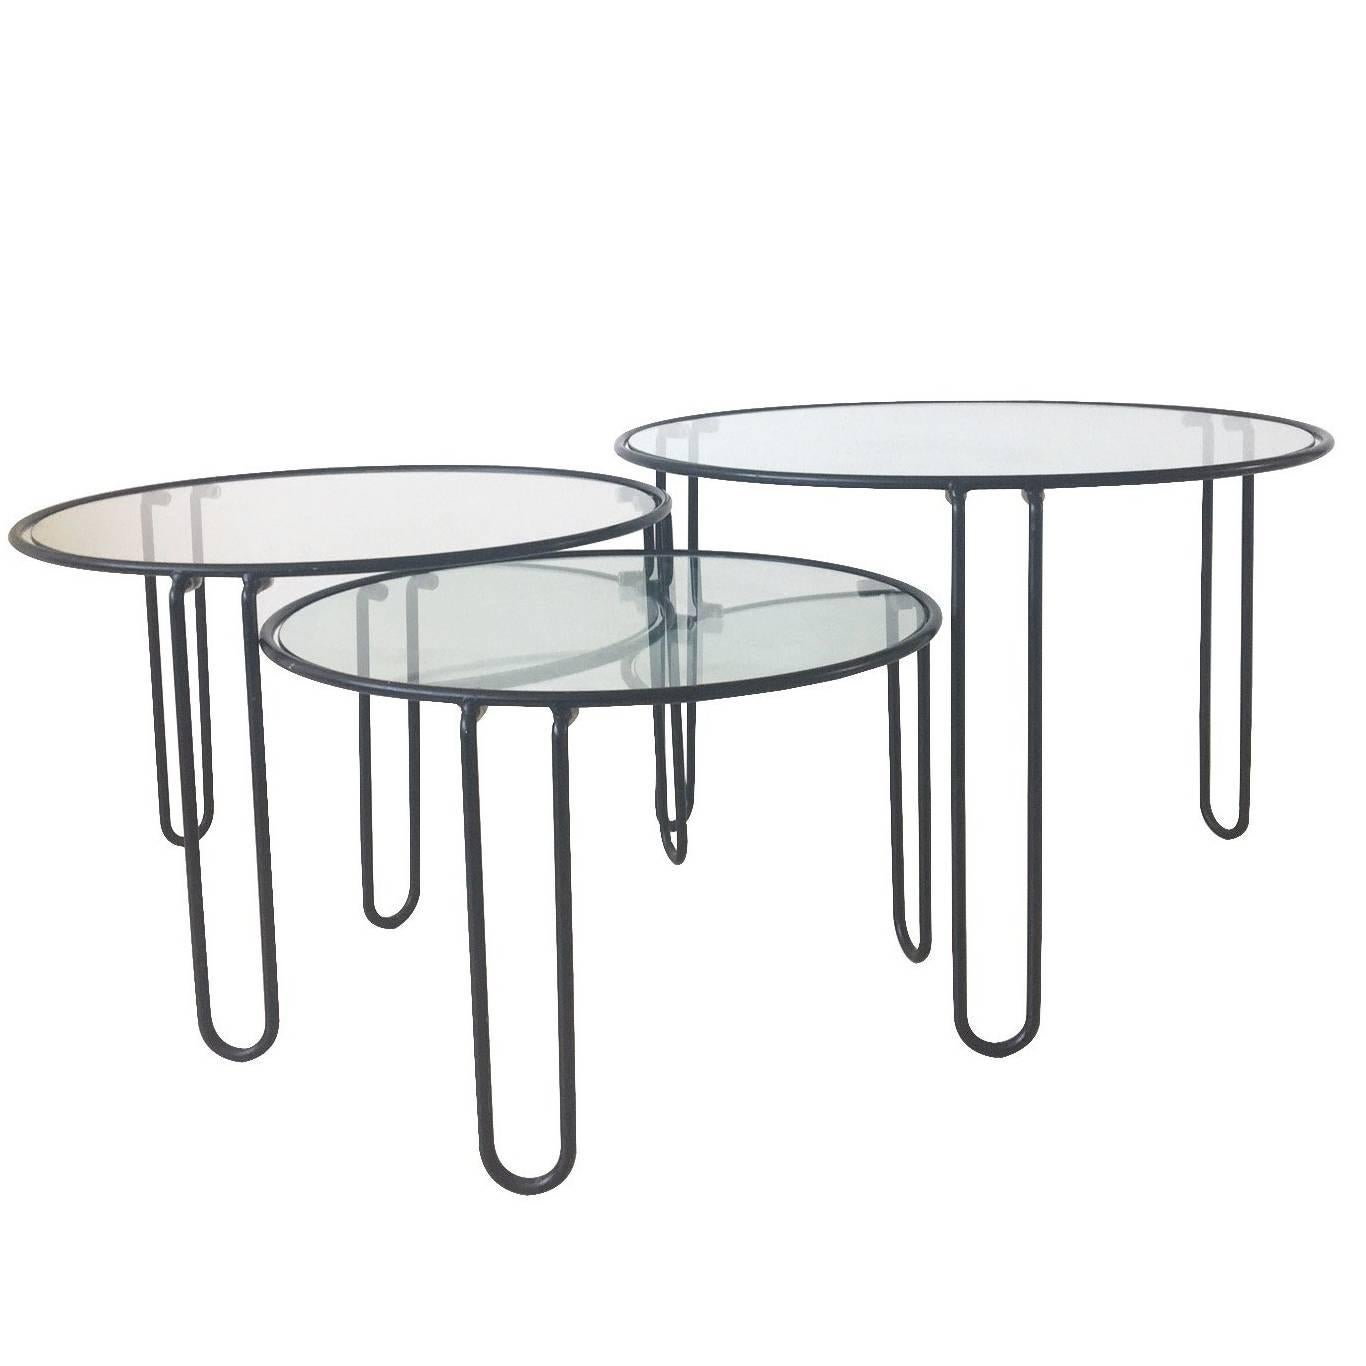 set of three midcentury metal and glass black coffee tables with hairpin legs